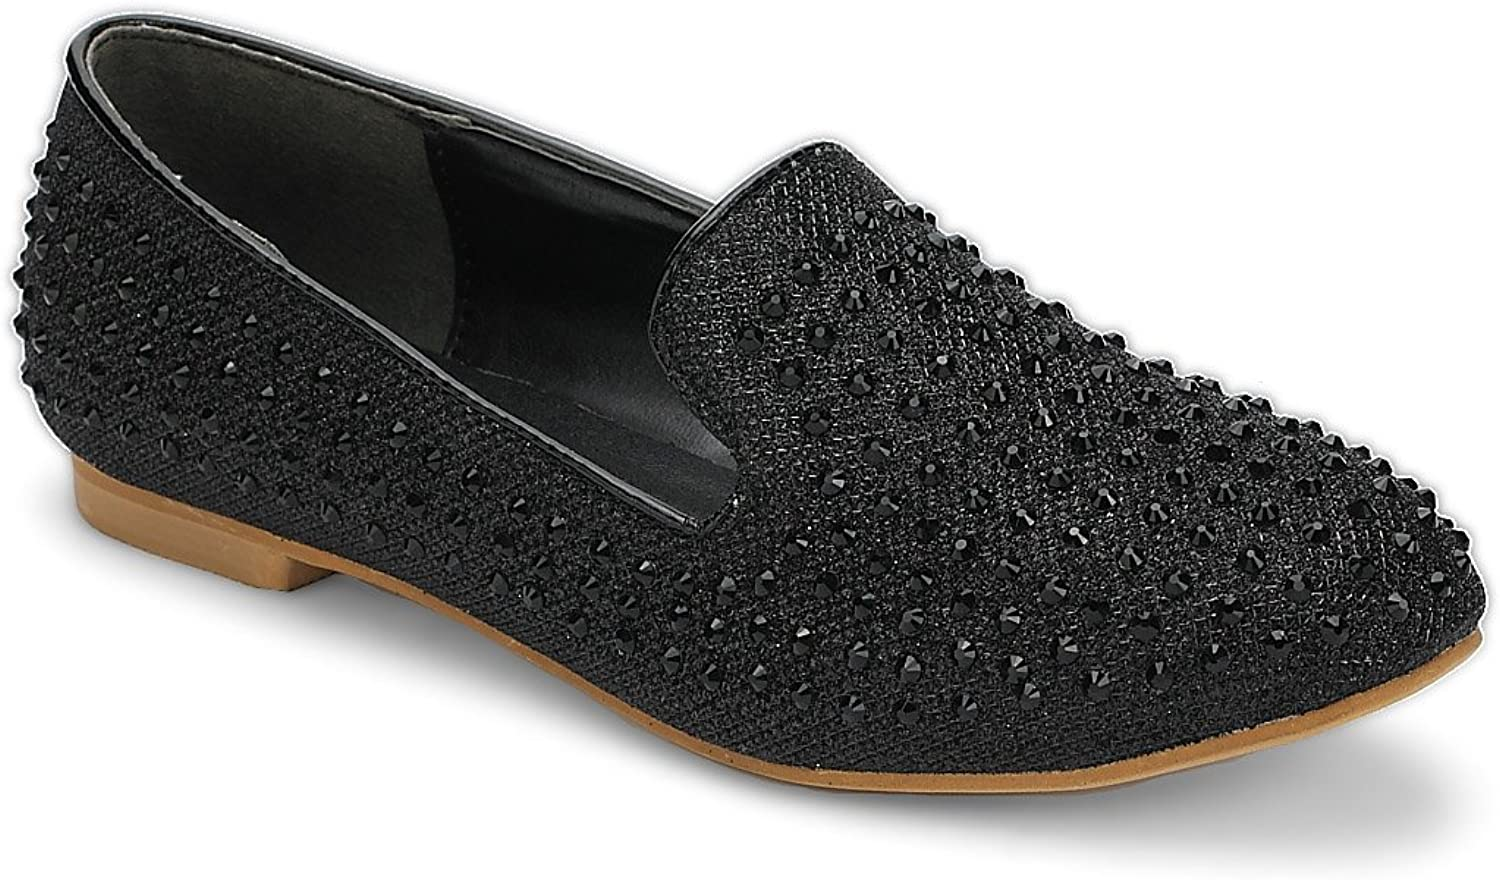 Helens Heart Slip into Our Ballet Flats, Featuring a Slip-on Style & Glitter Details